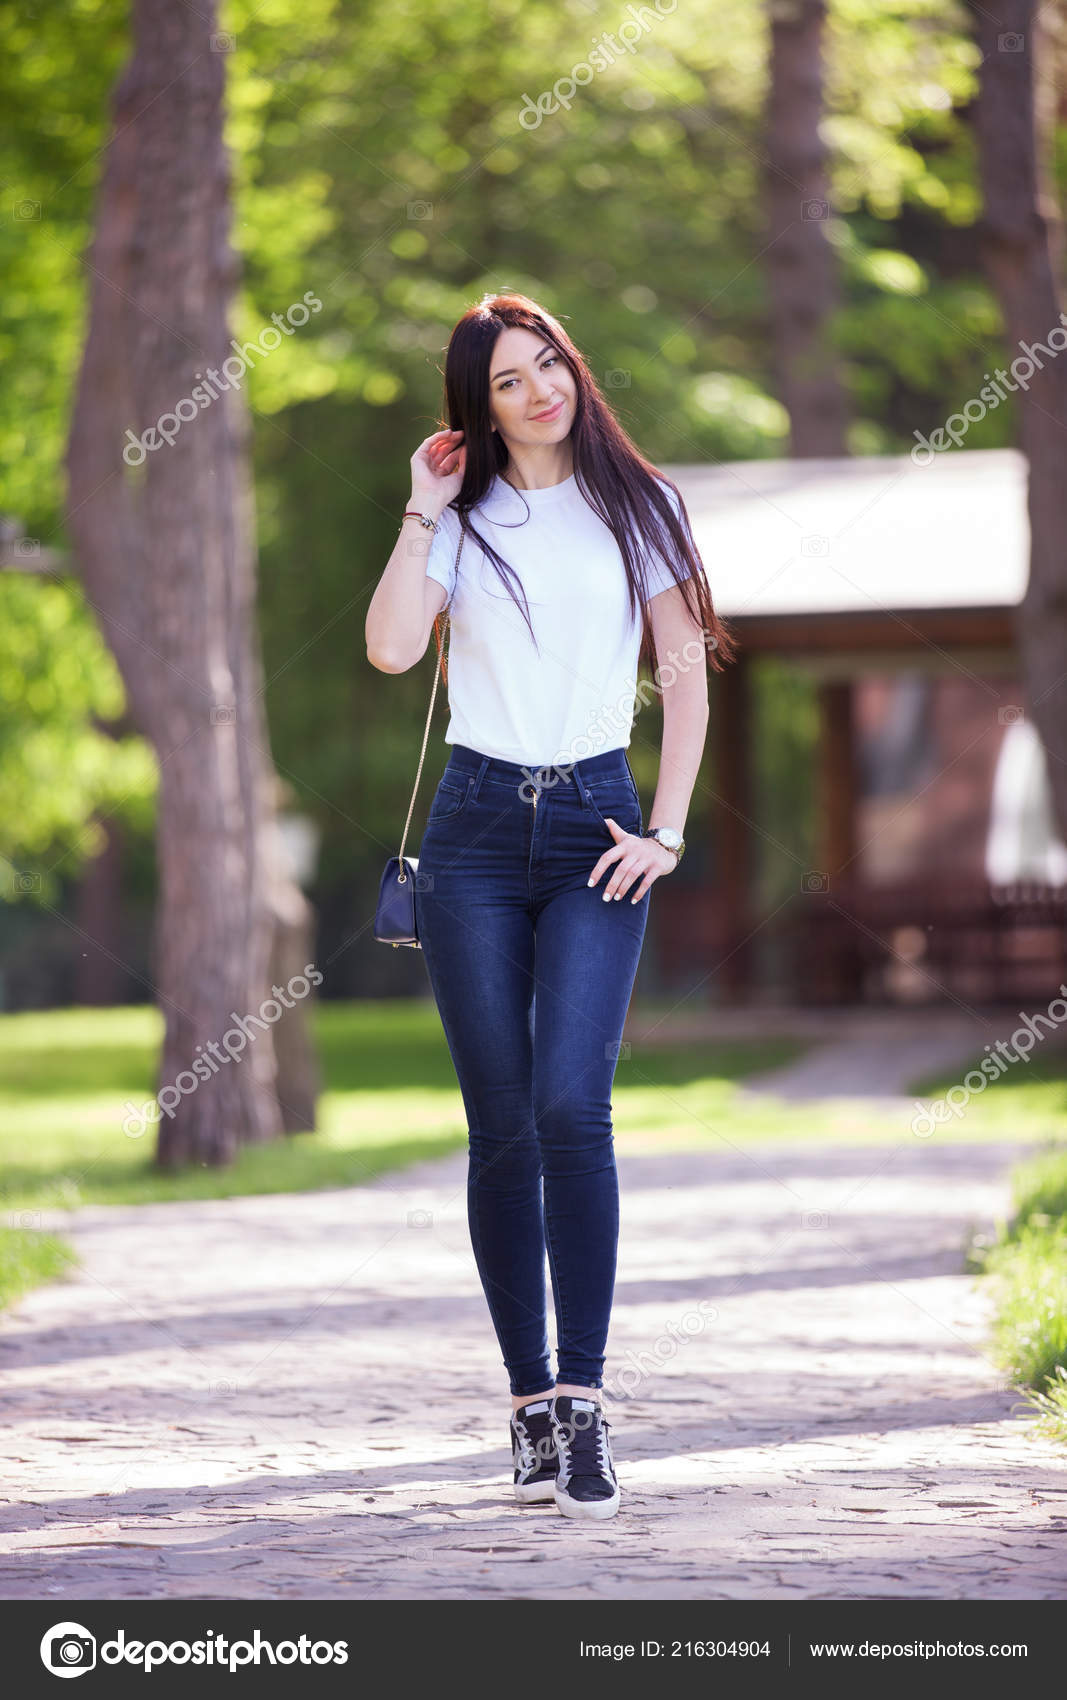 bdee211c3c8 Portrait of beautiful happy stylish woman in blue jeans and white t-shirt